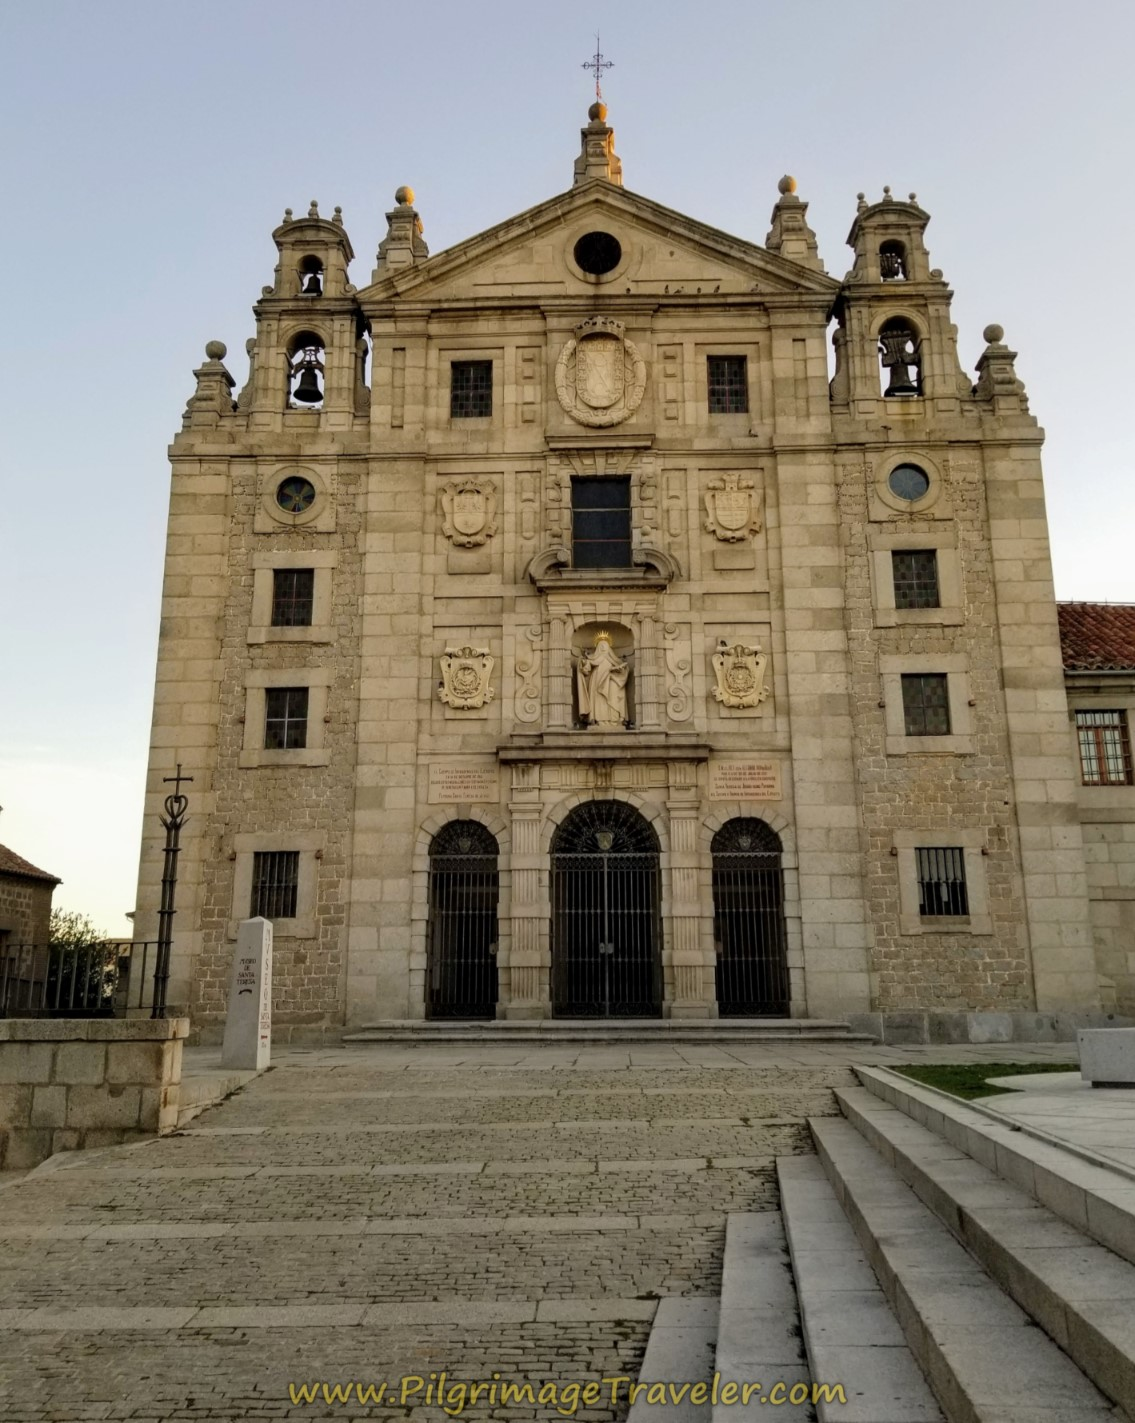 Convento de Santa Teresa, the official start of the Caminos Teresianos in Ávila.